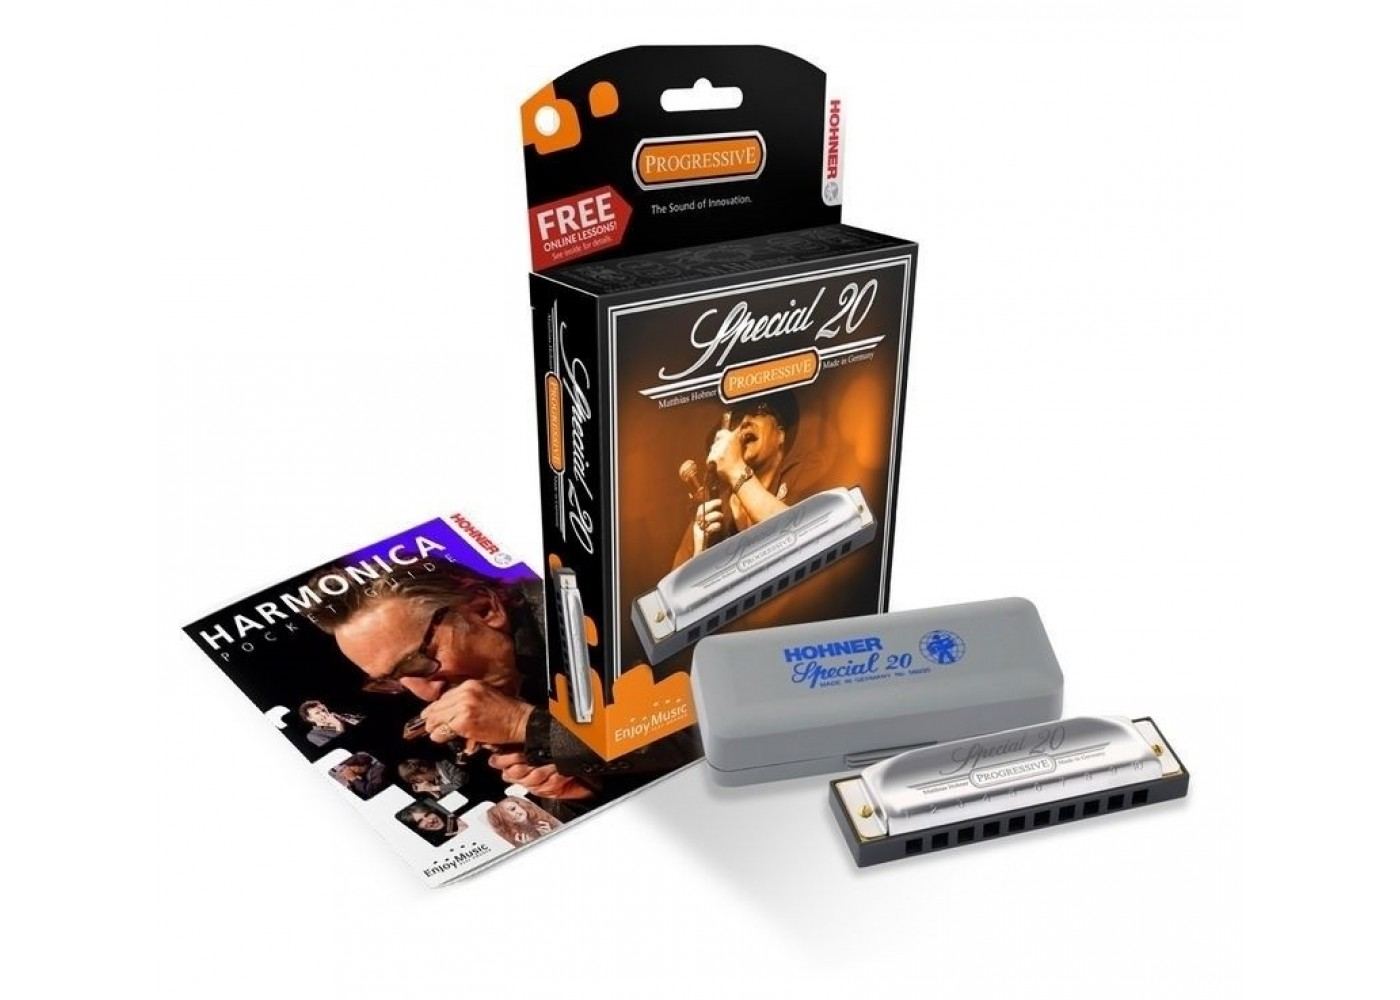 hohner progressive special 20 how to clean